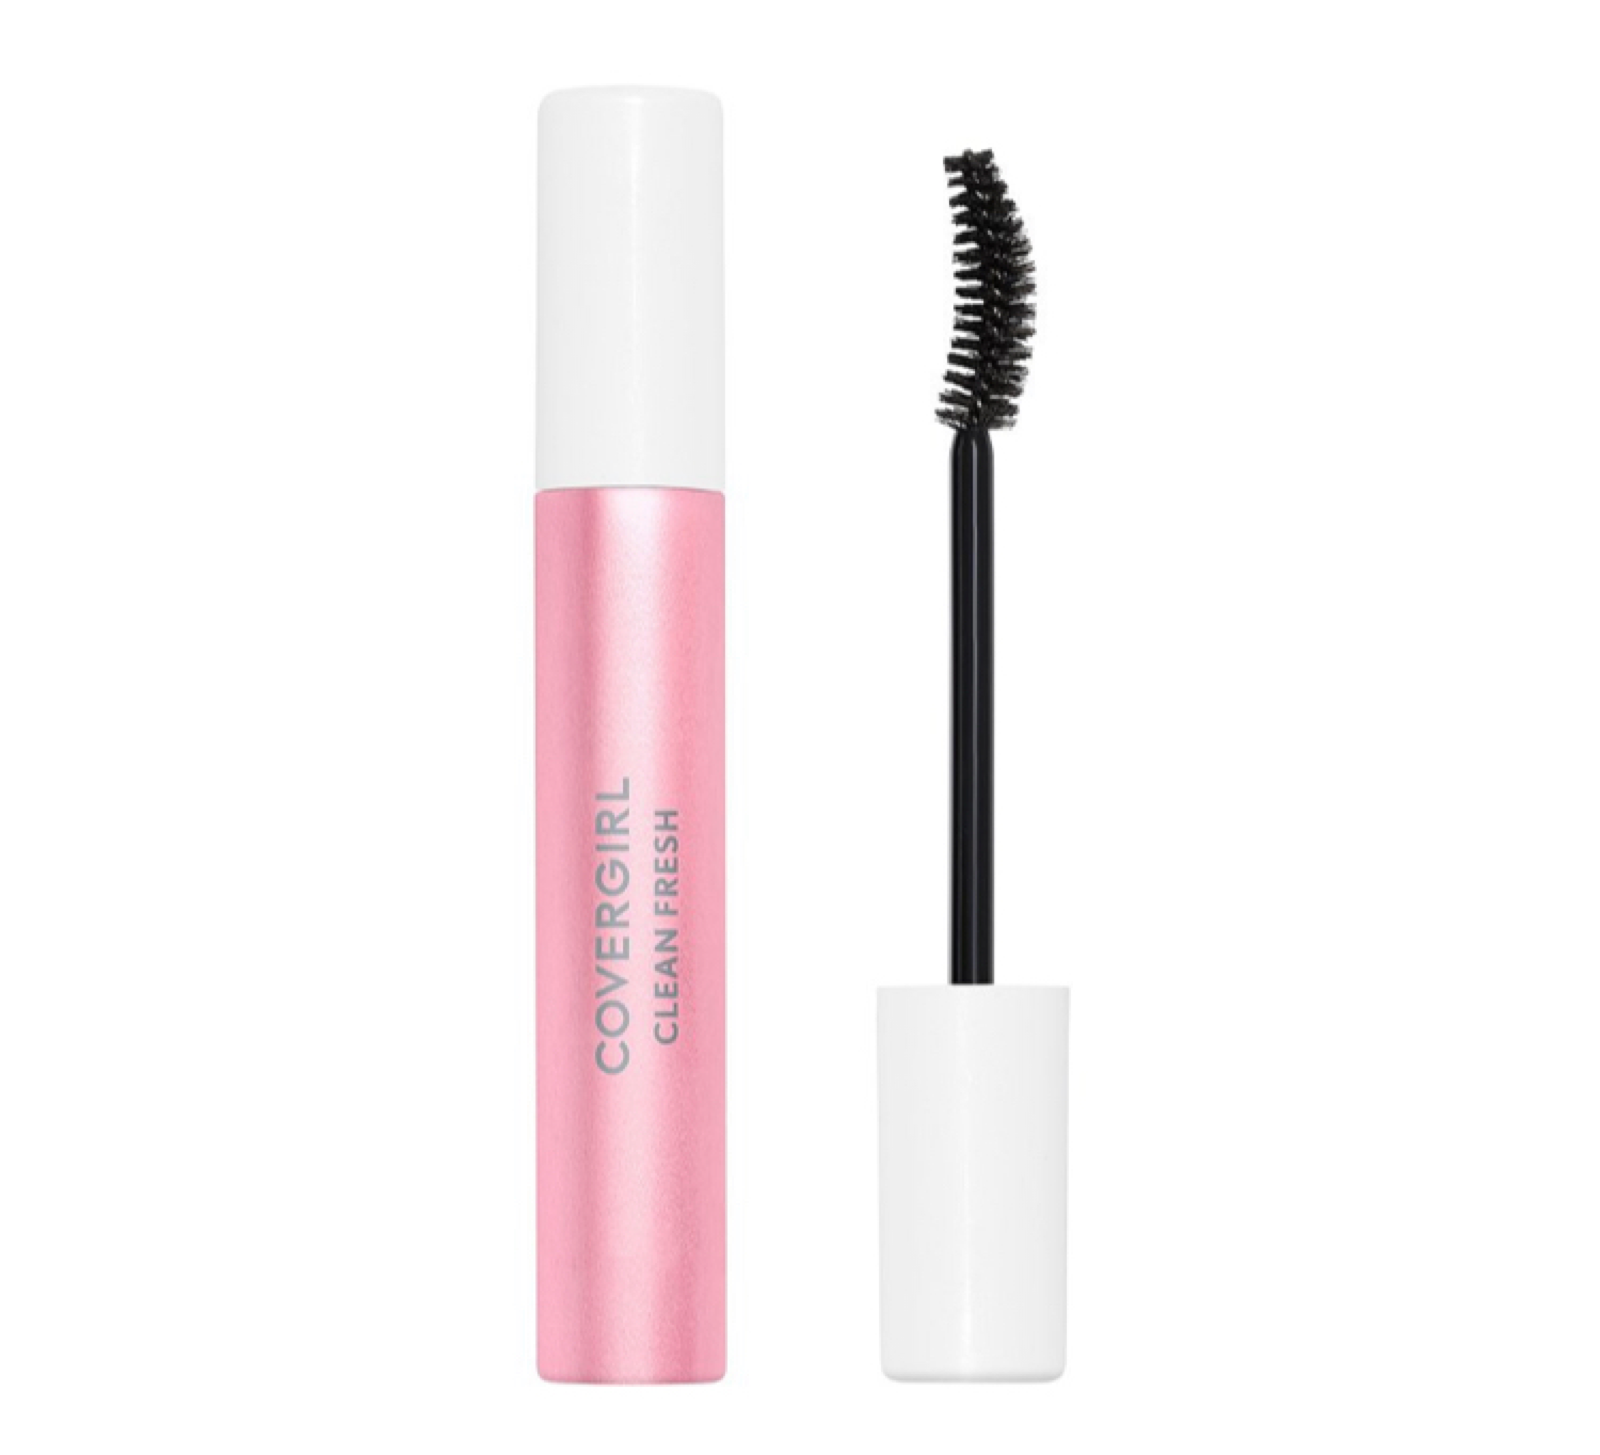 Covergirl Clean Fresh Mascara